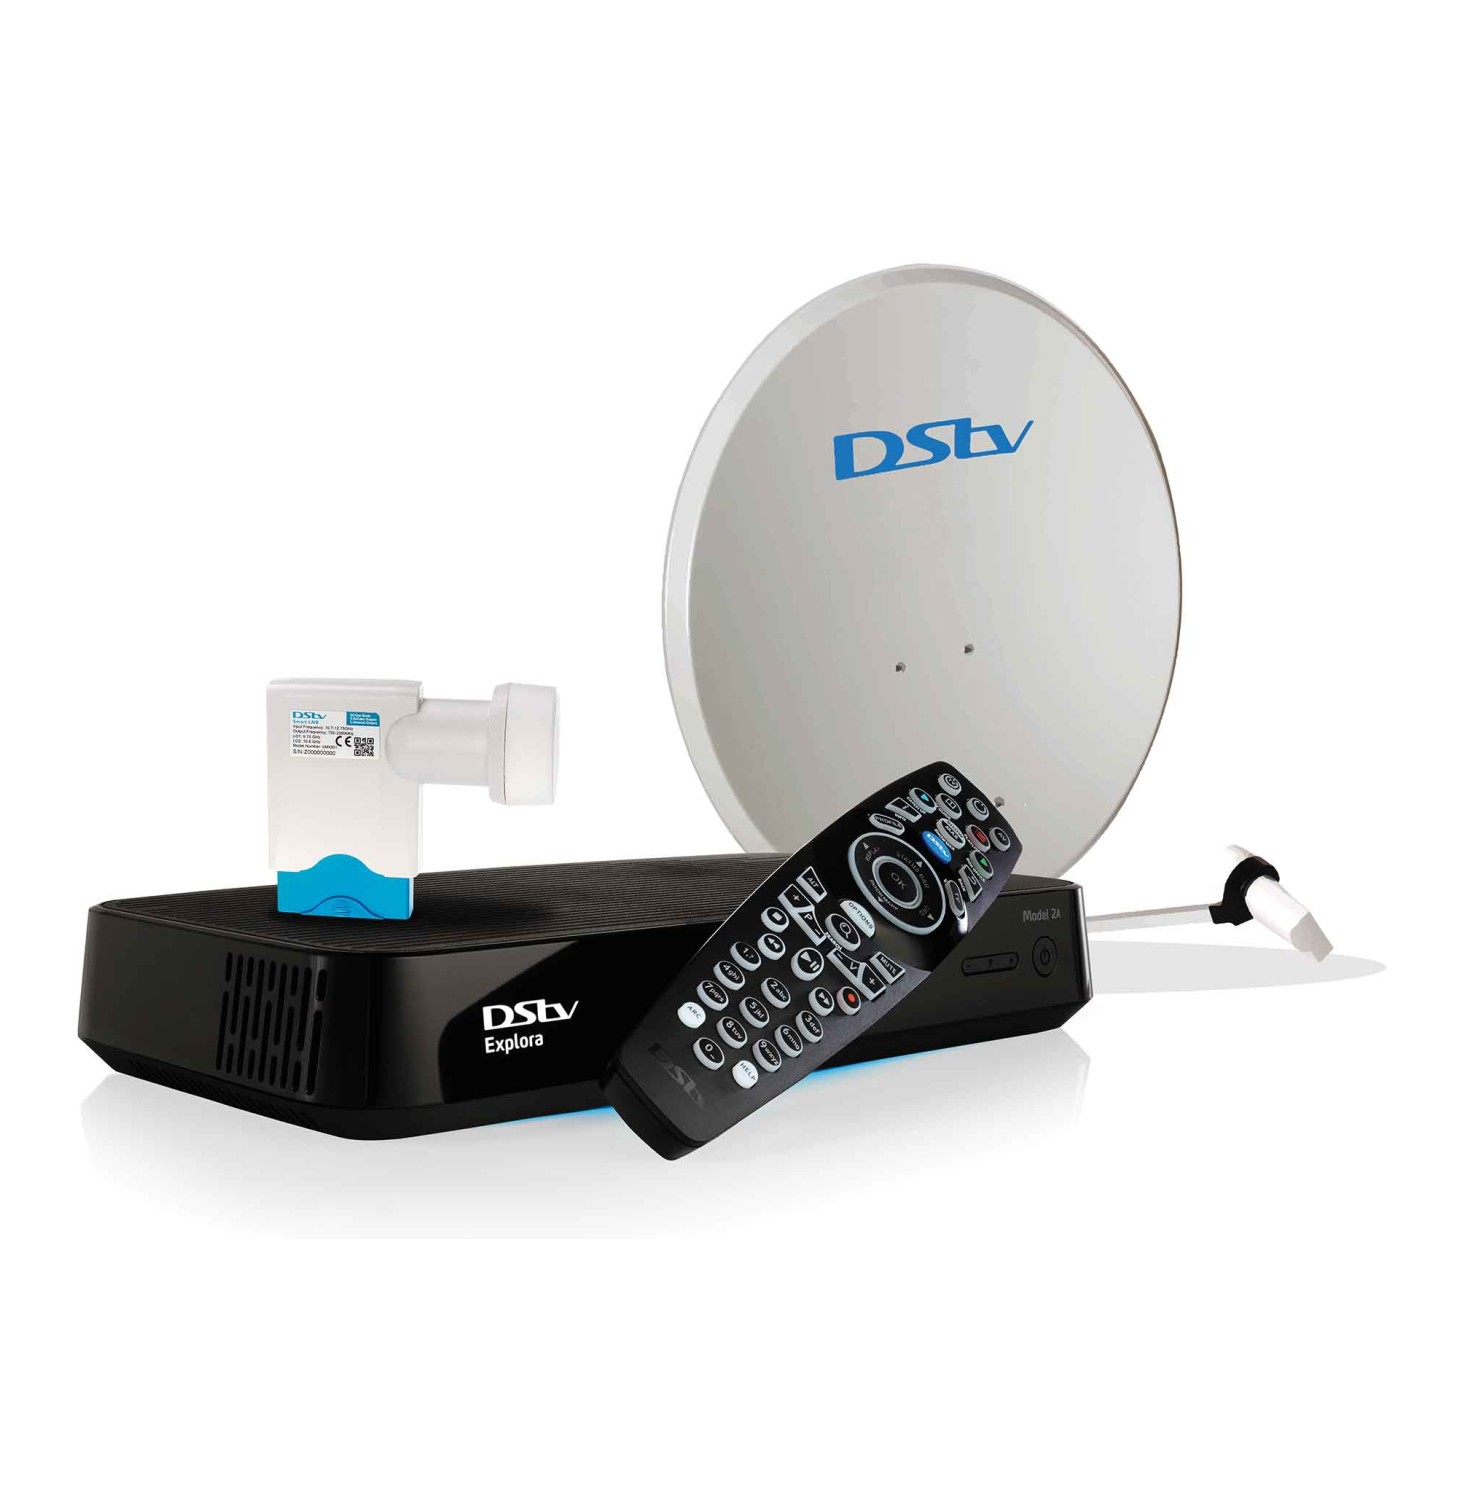 DSTV INSTALLATIONS CCTV AUDIO VISUAL INSTALLERS PORT ELIZABETH AND DESPATCH 0835884519